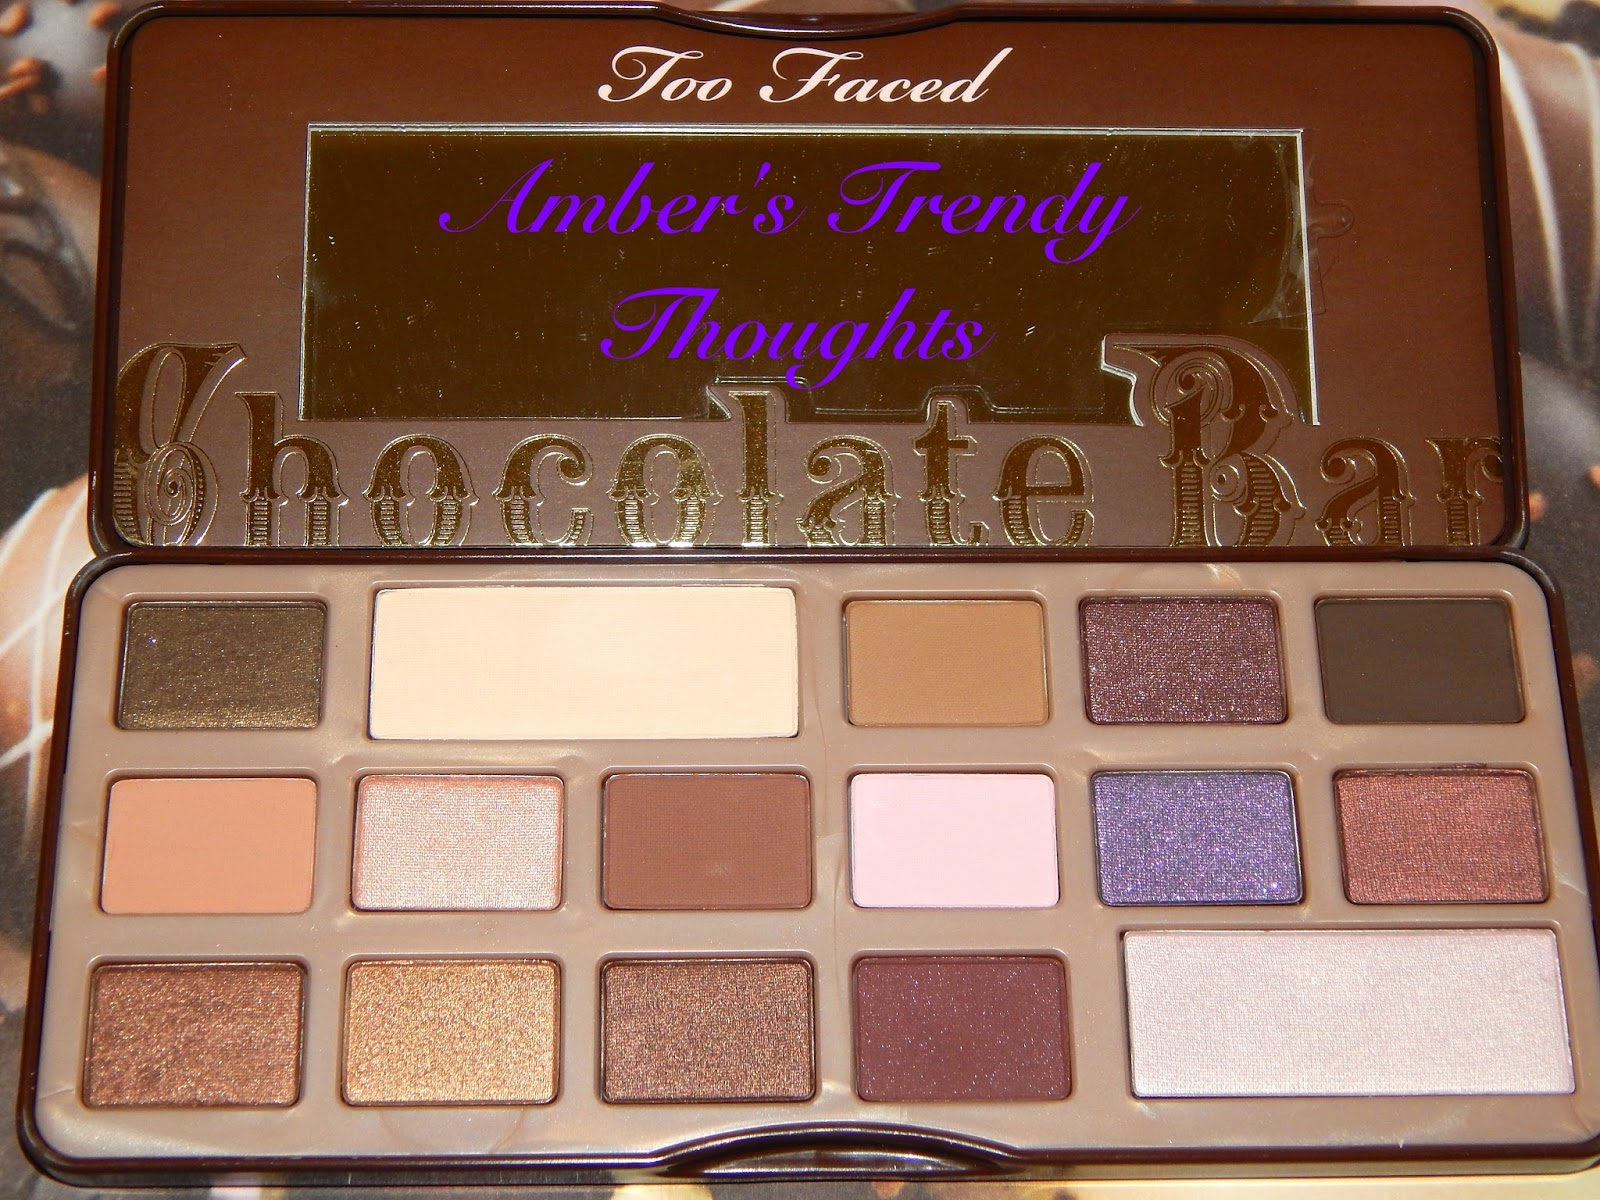 Too Faced Chocolate Bar Palettes Worth The Hype? | Amber's Trendy ...